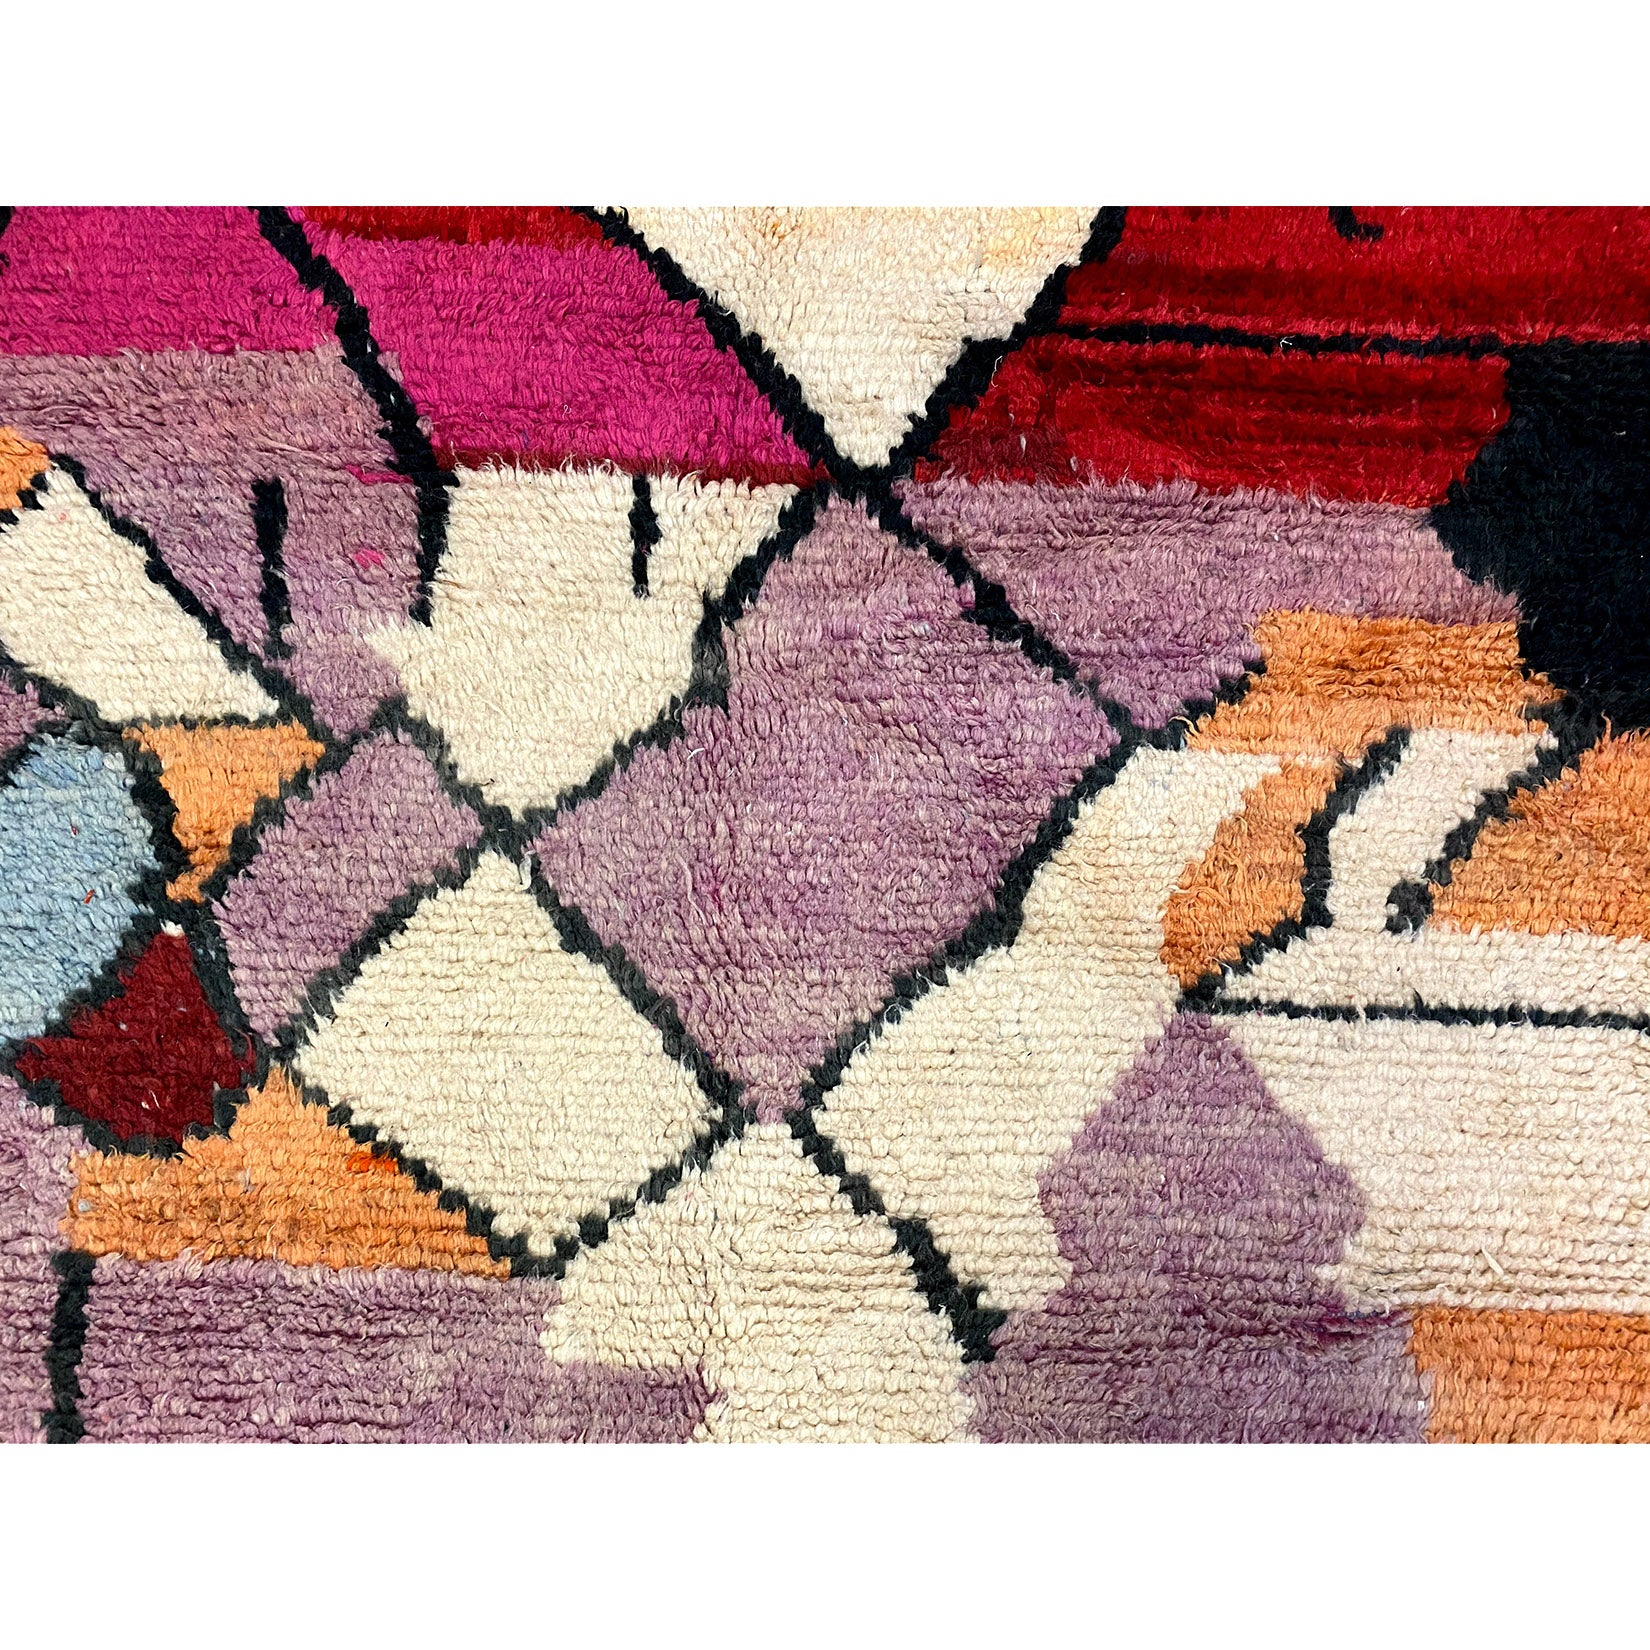 Contemporary boho chic Moroccan berber carpet in red and purple - Kantara | Moroccan Rugs